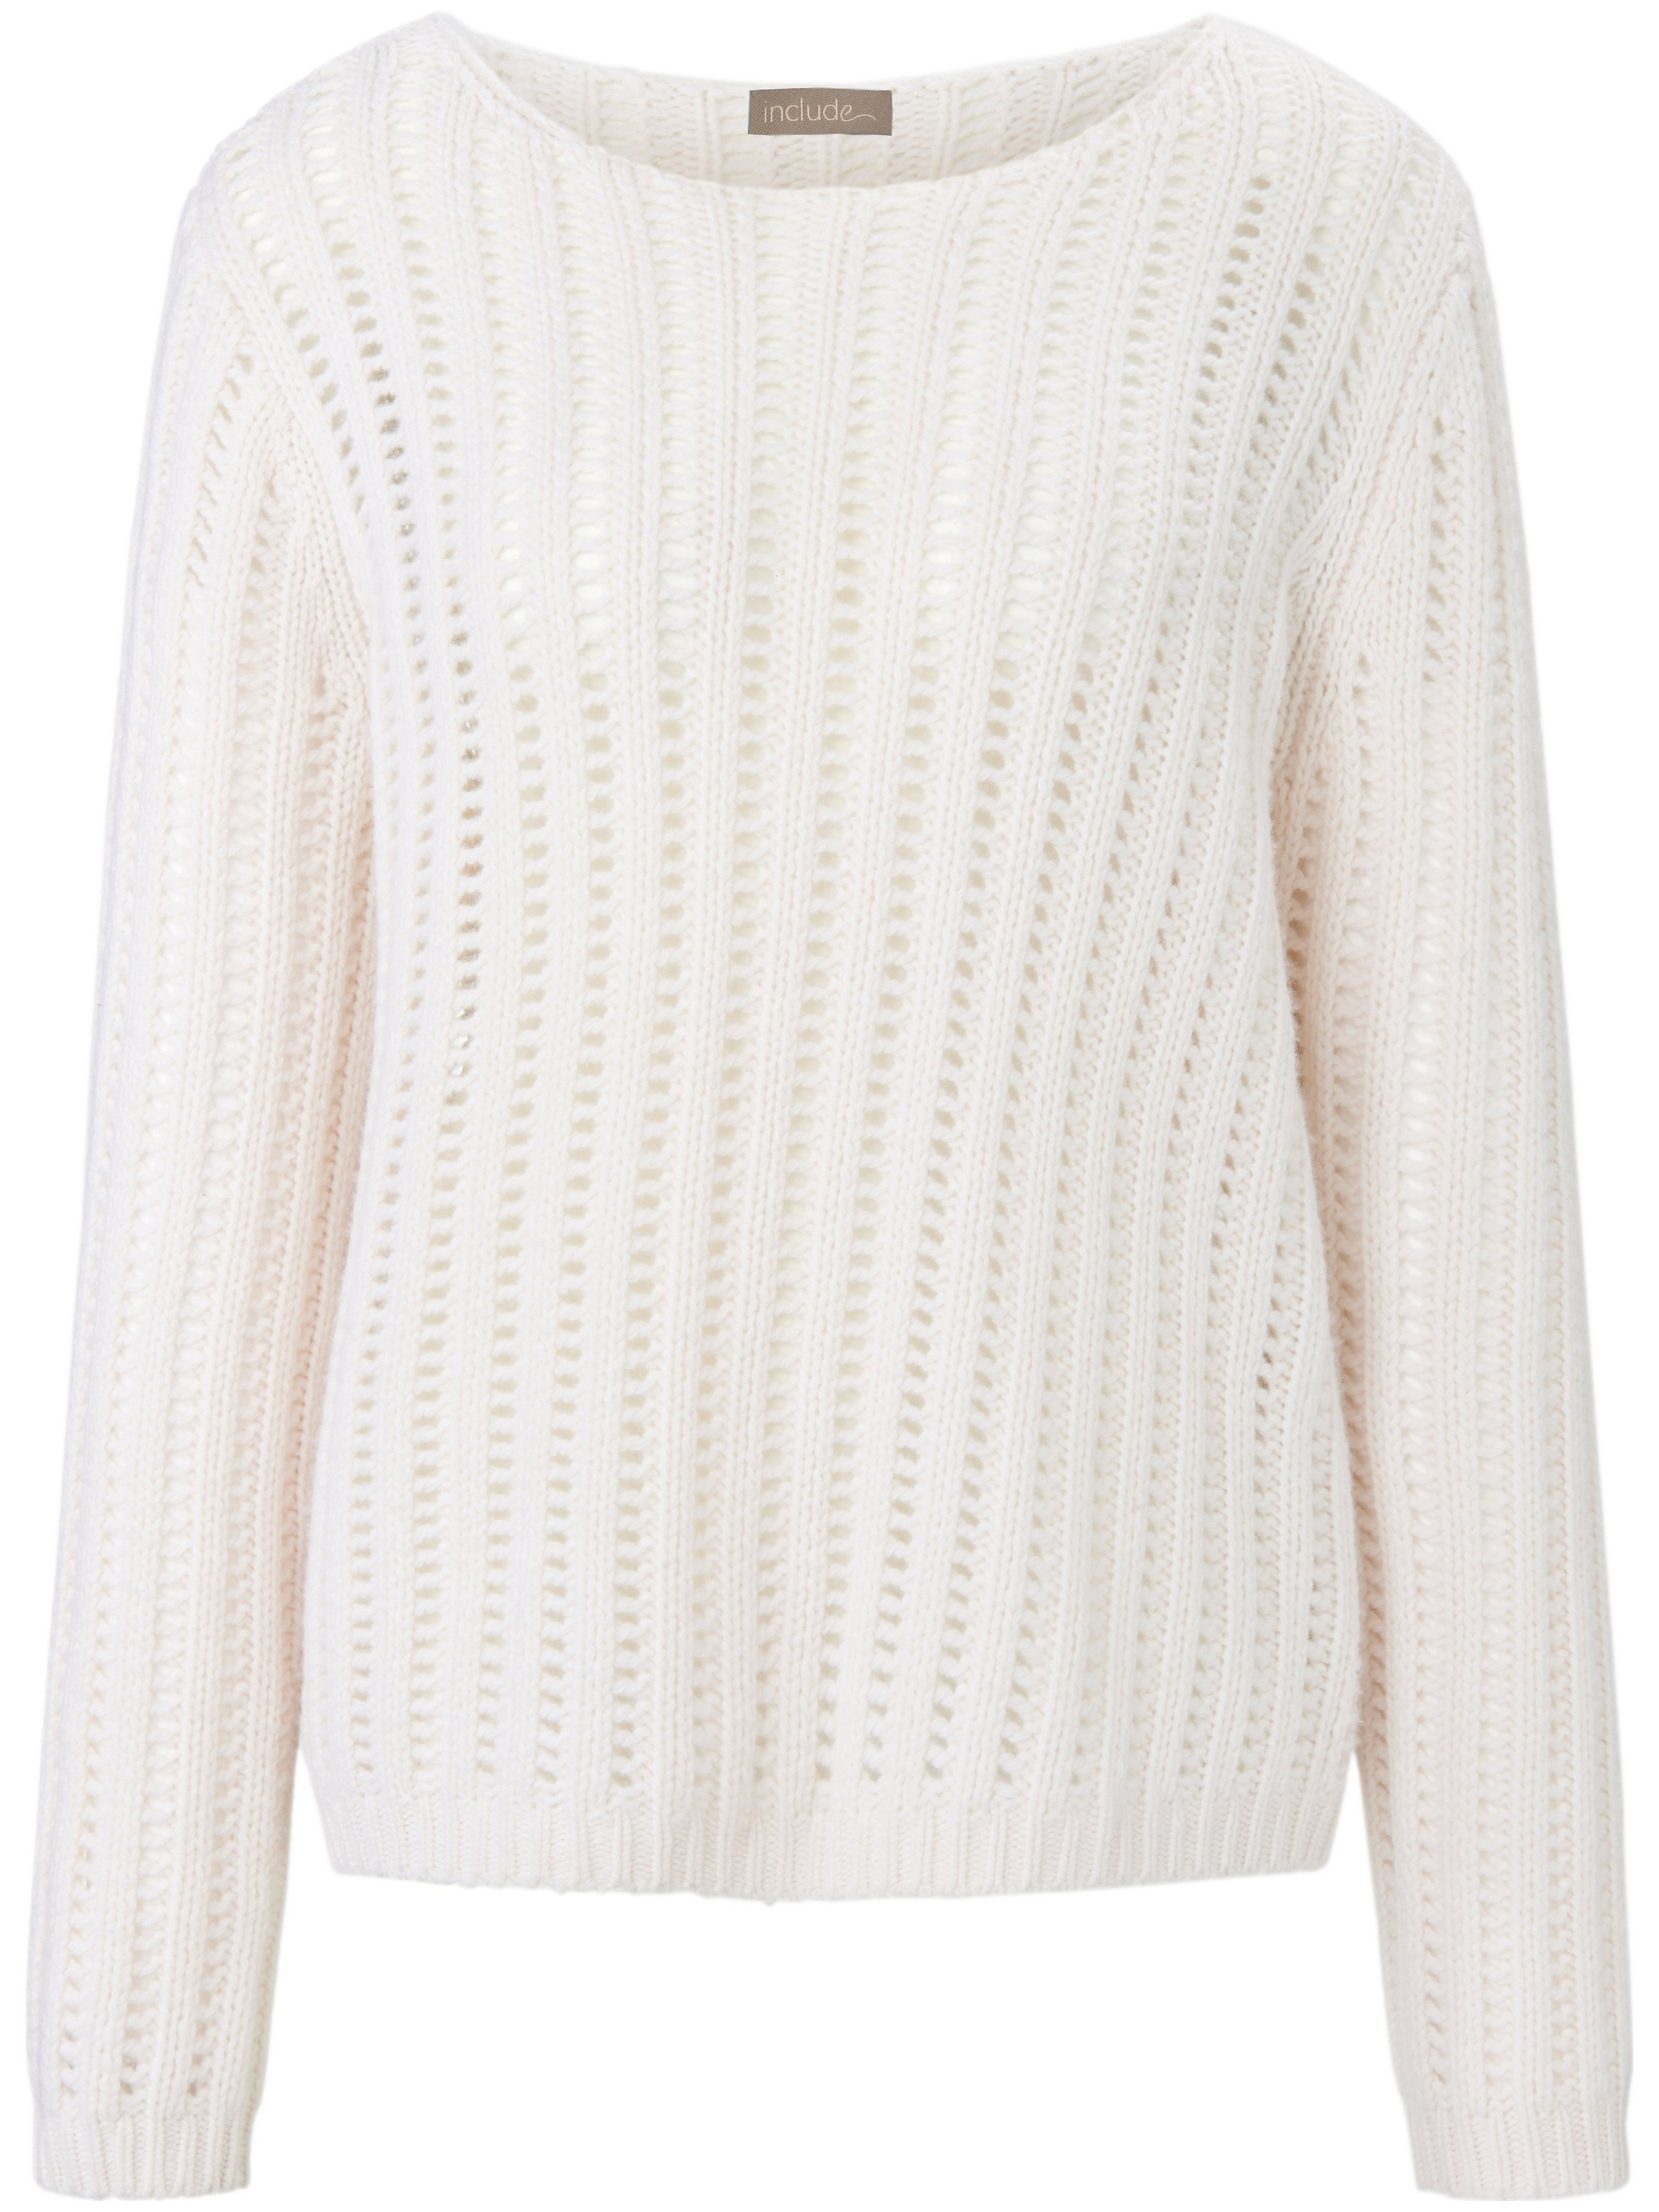 Le pull 100% cachemire  include blanc